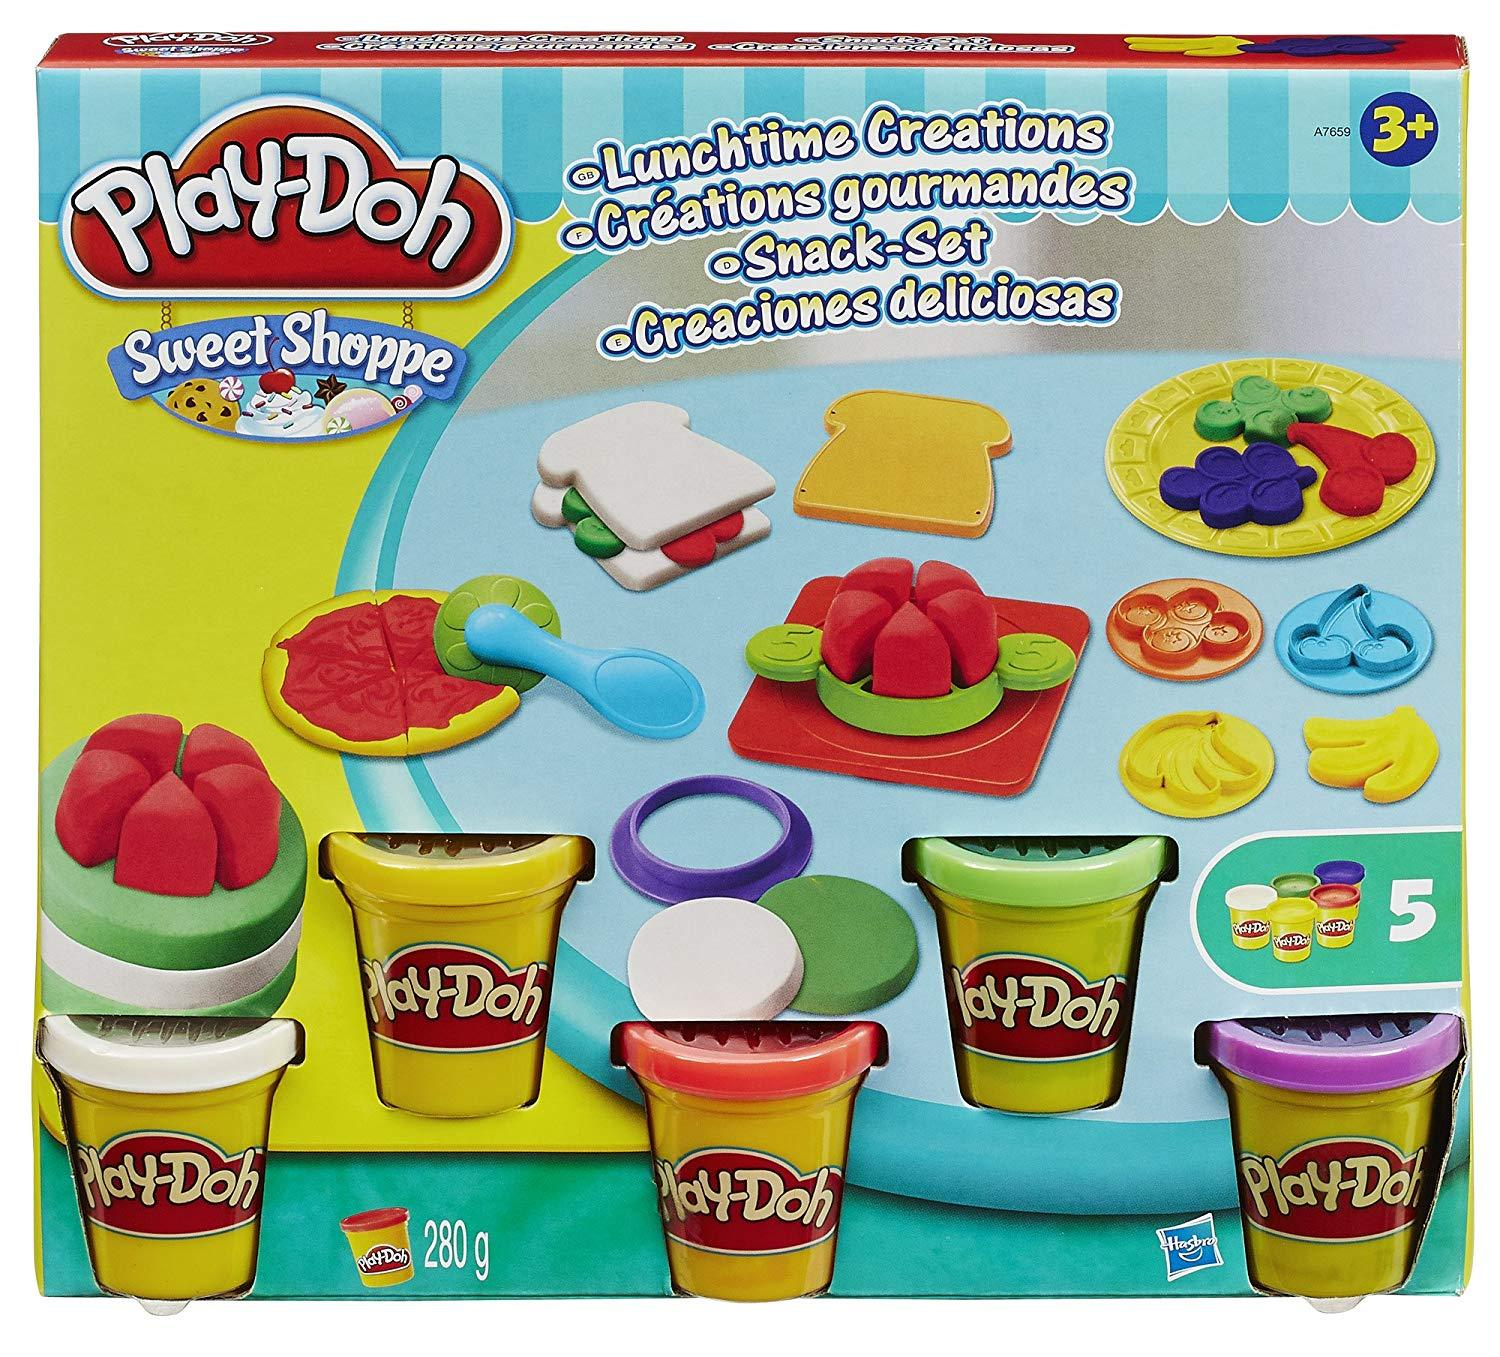 Primary image for Play-Doh Sweet Shoppe Lunchtime Creations Playset 5 Cans